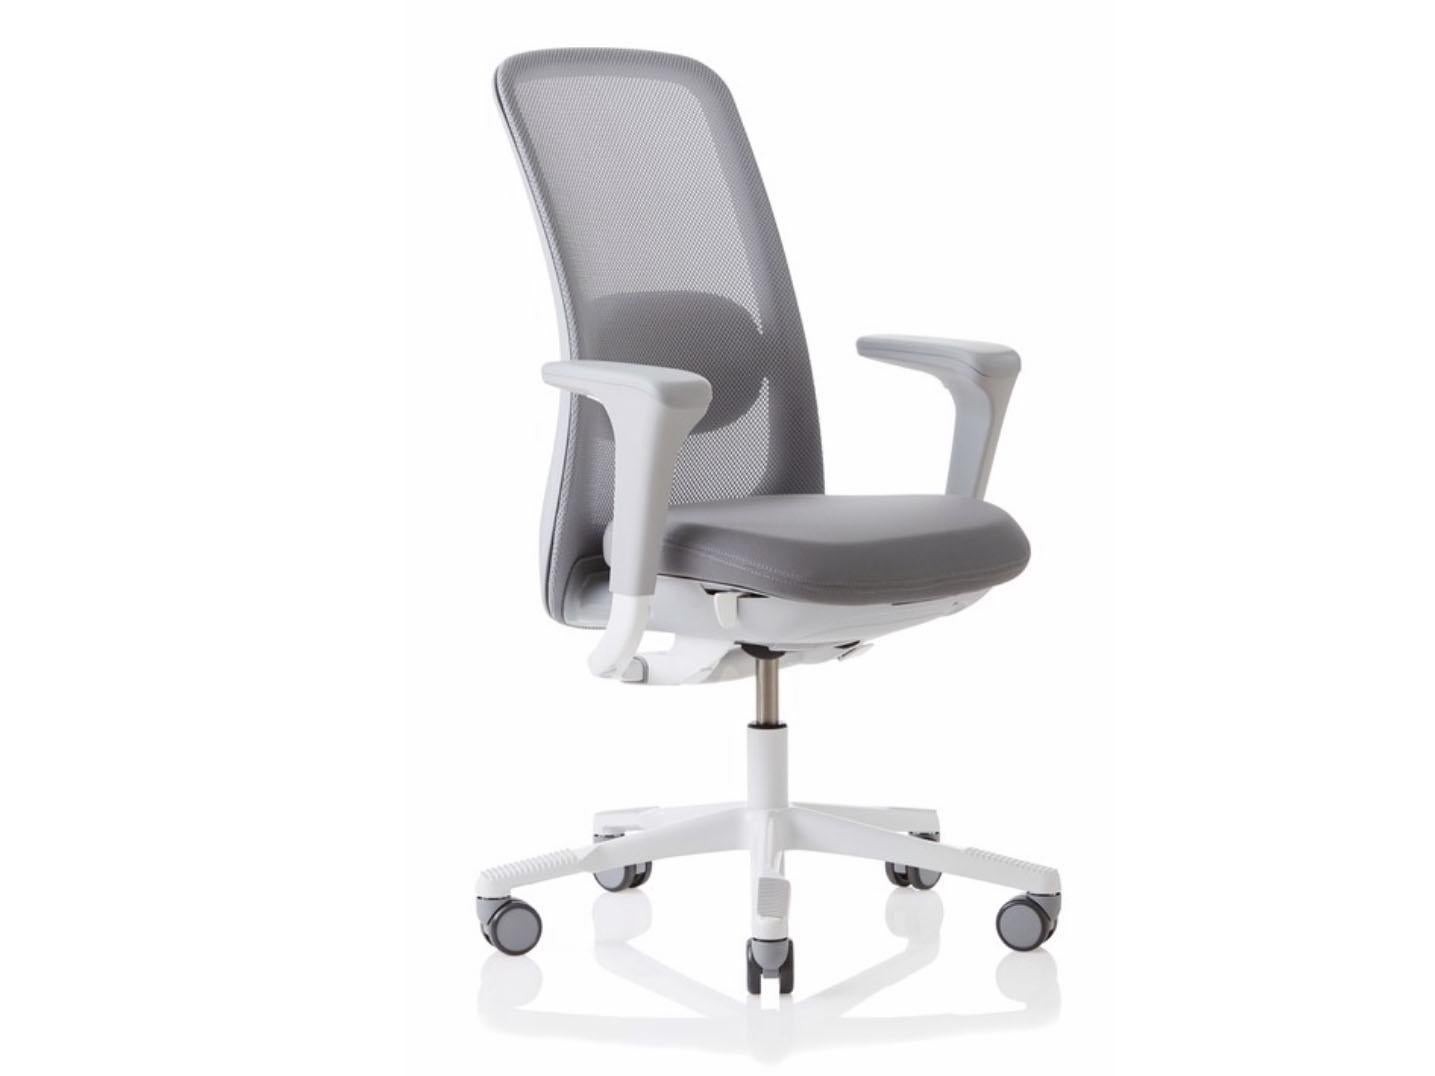 Enjoyable 8 Best Ergonomic Office Chairs The Independent Pabps2019 Chair Design Images Pabps2019Com